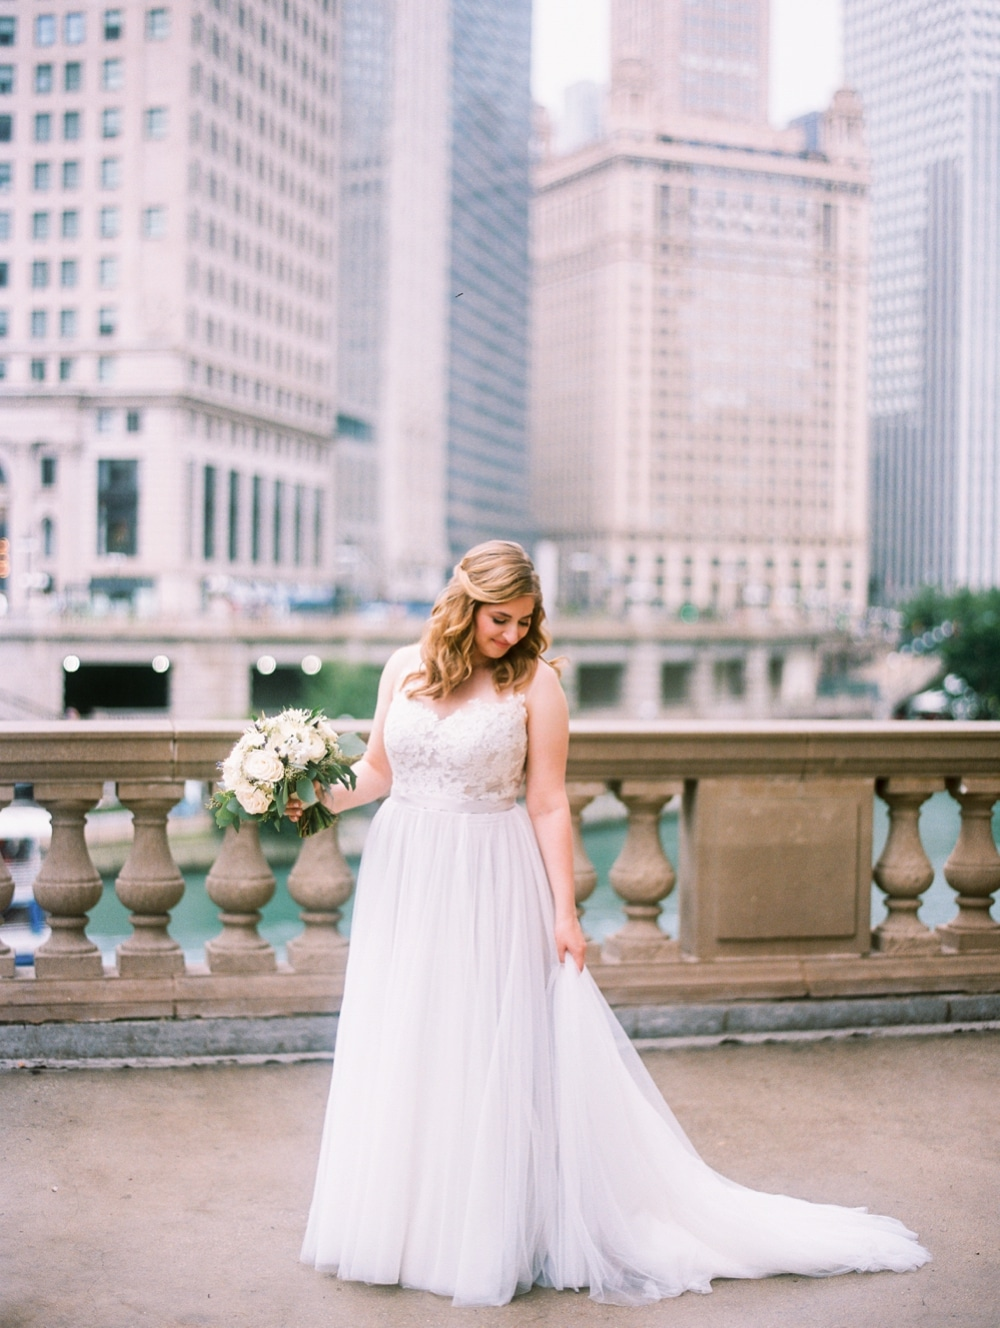 kristin-la-voie-photography-wyndham-grand-chicago-jewish-wedding-176